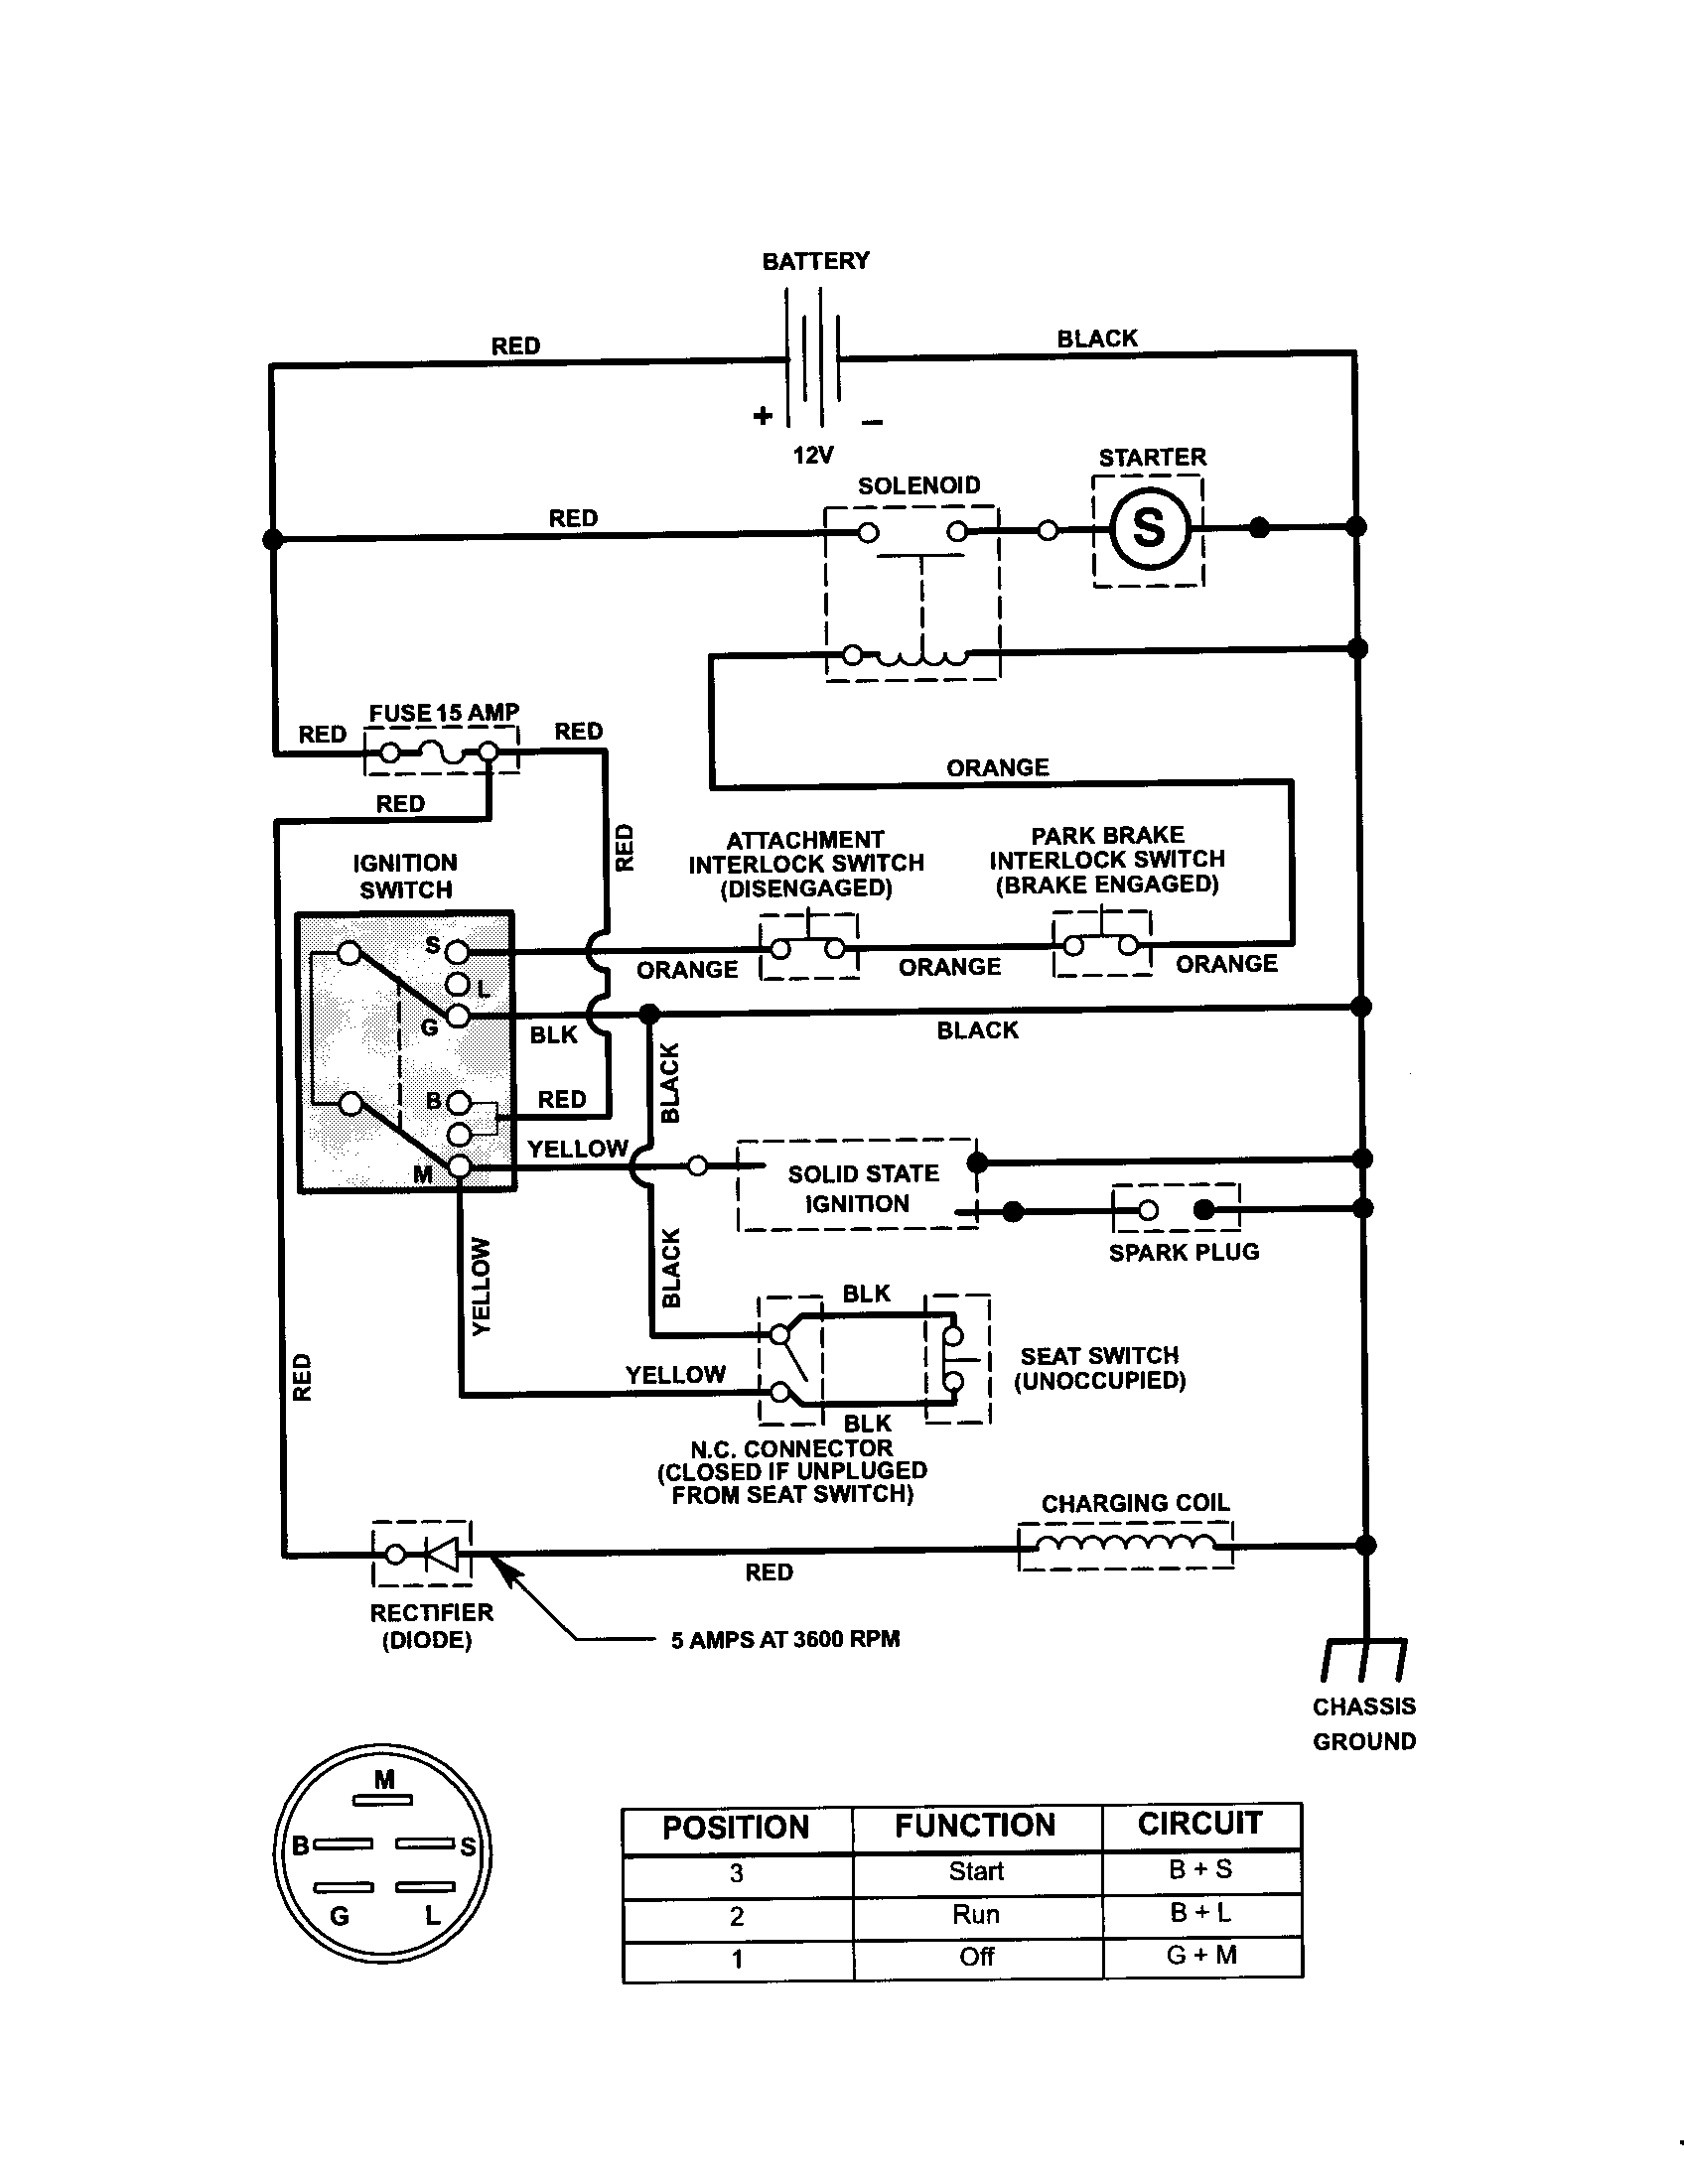 1b4fc64e2bcb7b381848942ff5c84dce craftsman riding mower electrical diagram pictures of craftsman wiring diagram for mtd riding lawn mower at bayanpartner.co